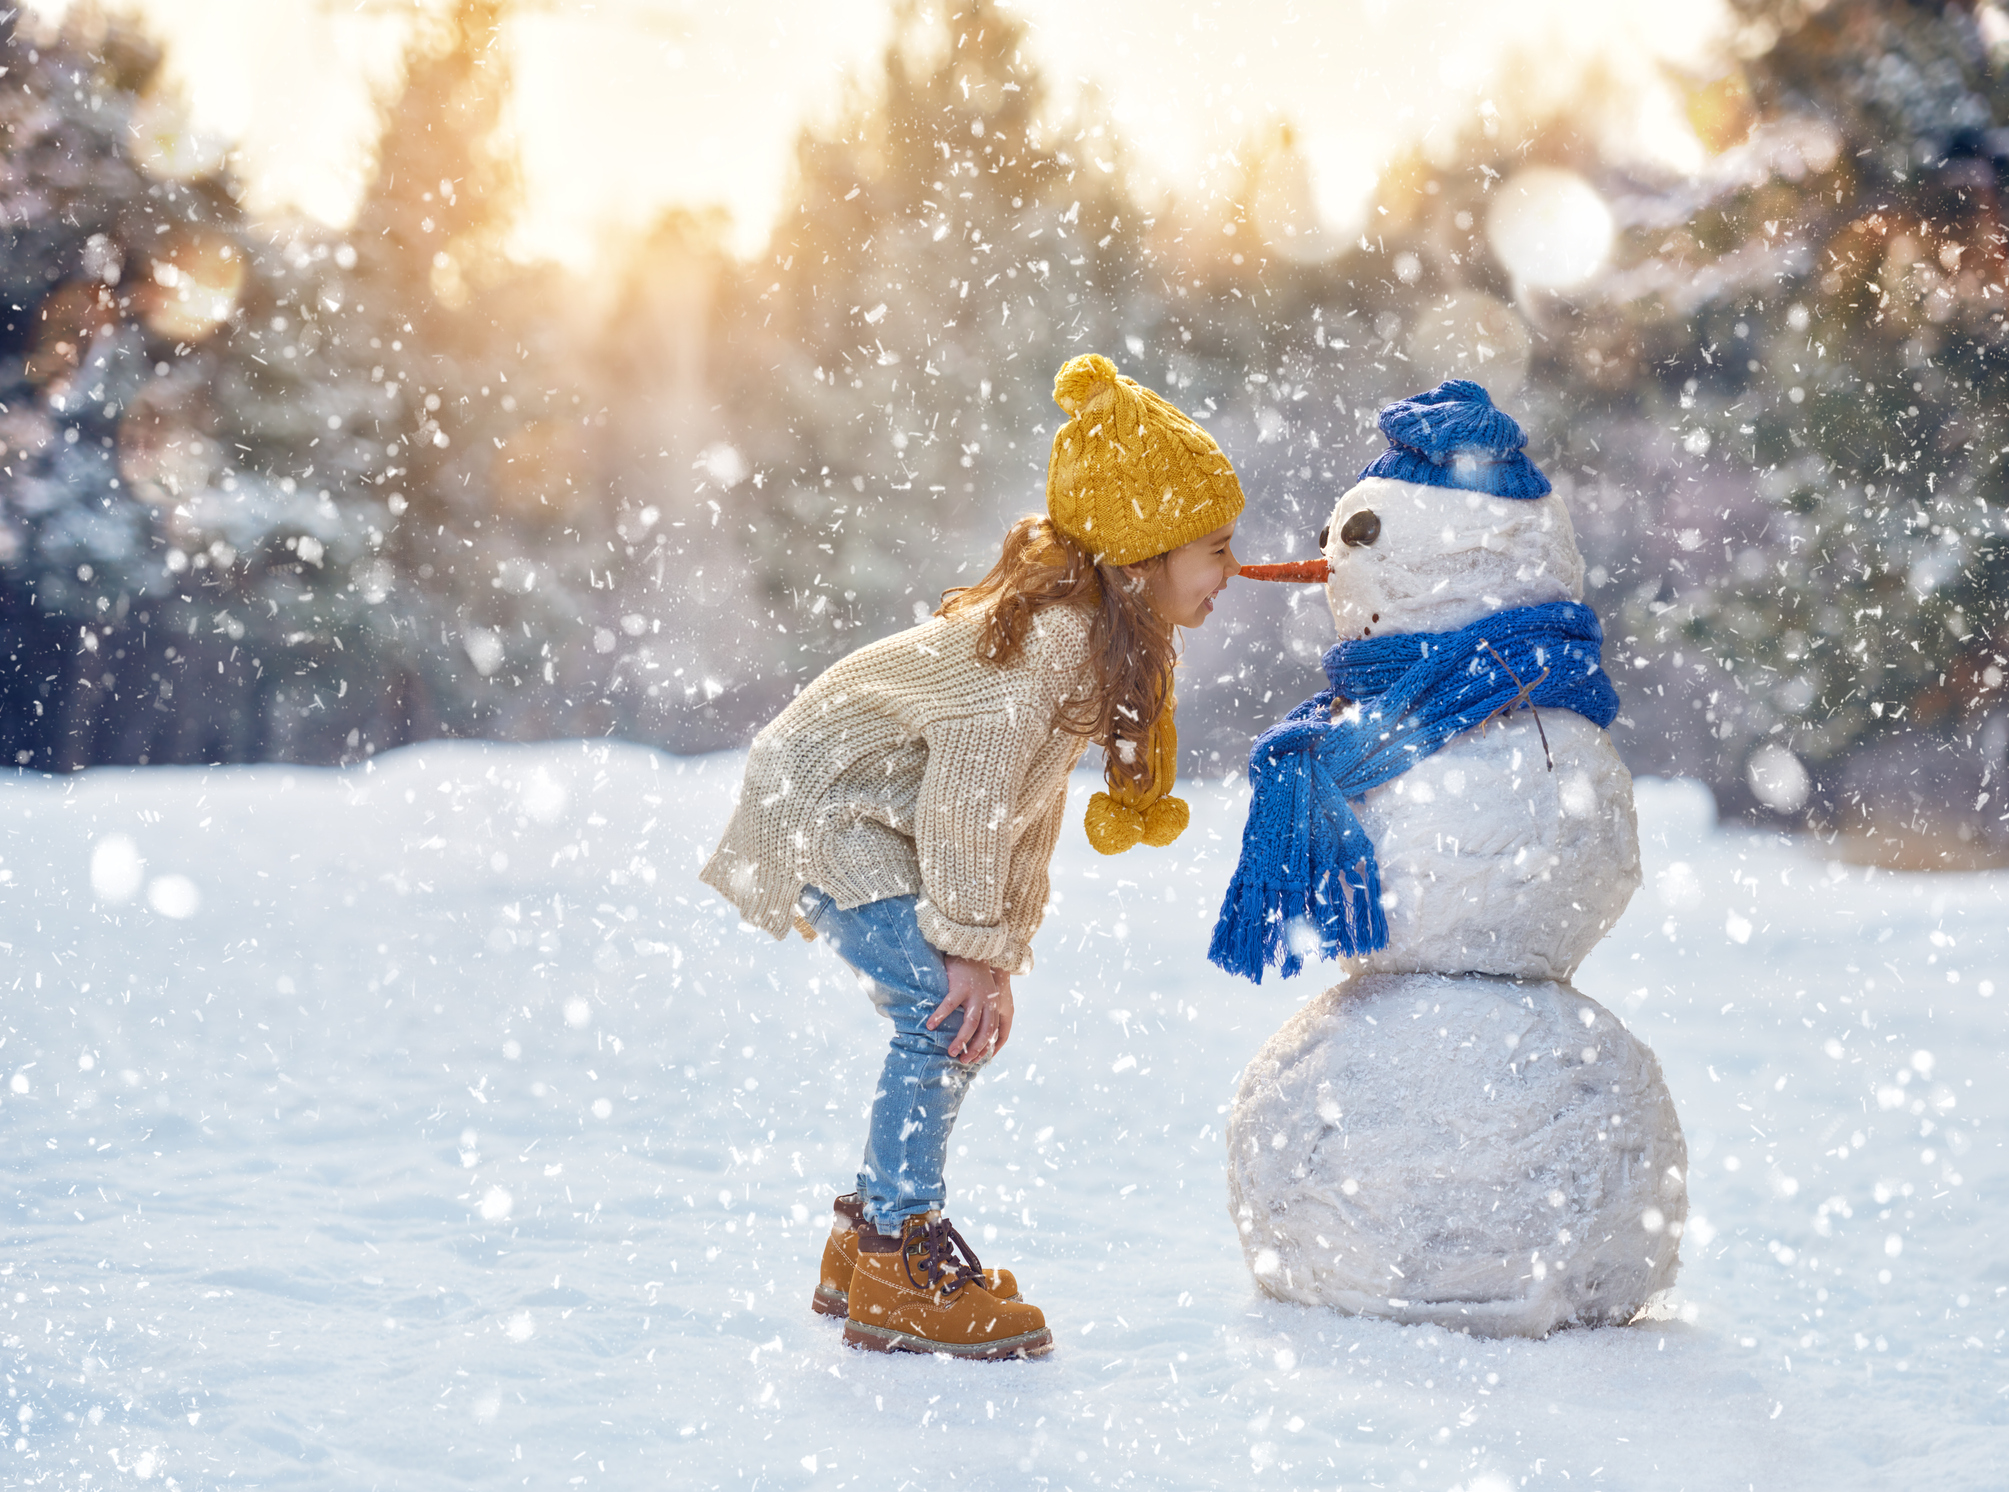 Holiday SKip-A-Pay 2021 image of girl nose-to-nose with a snowman